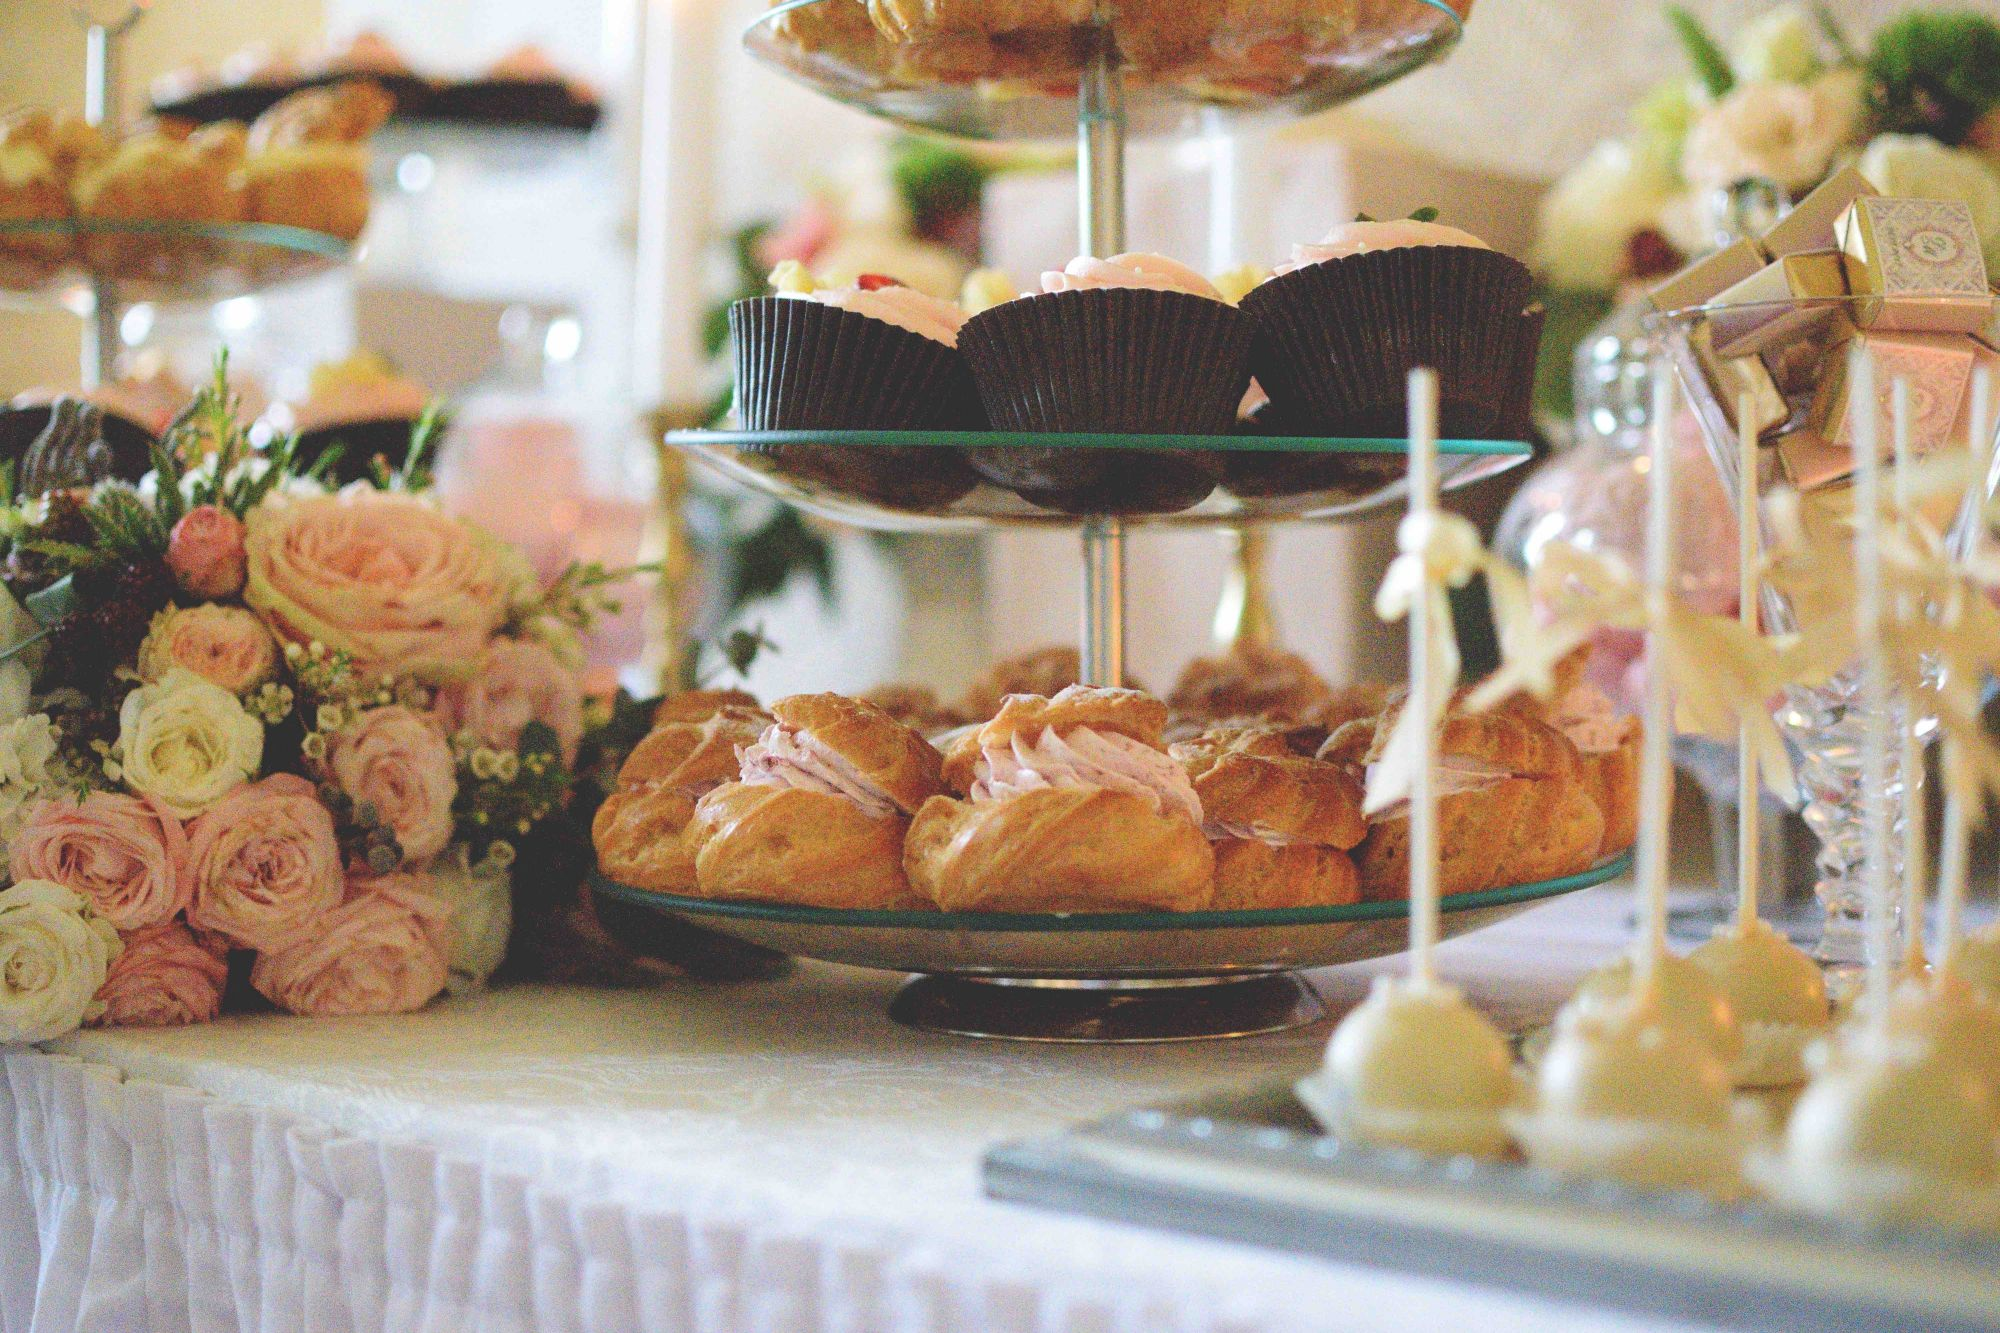 The Ultimate Guide To Afternoon Tea In 2021